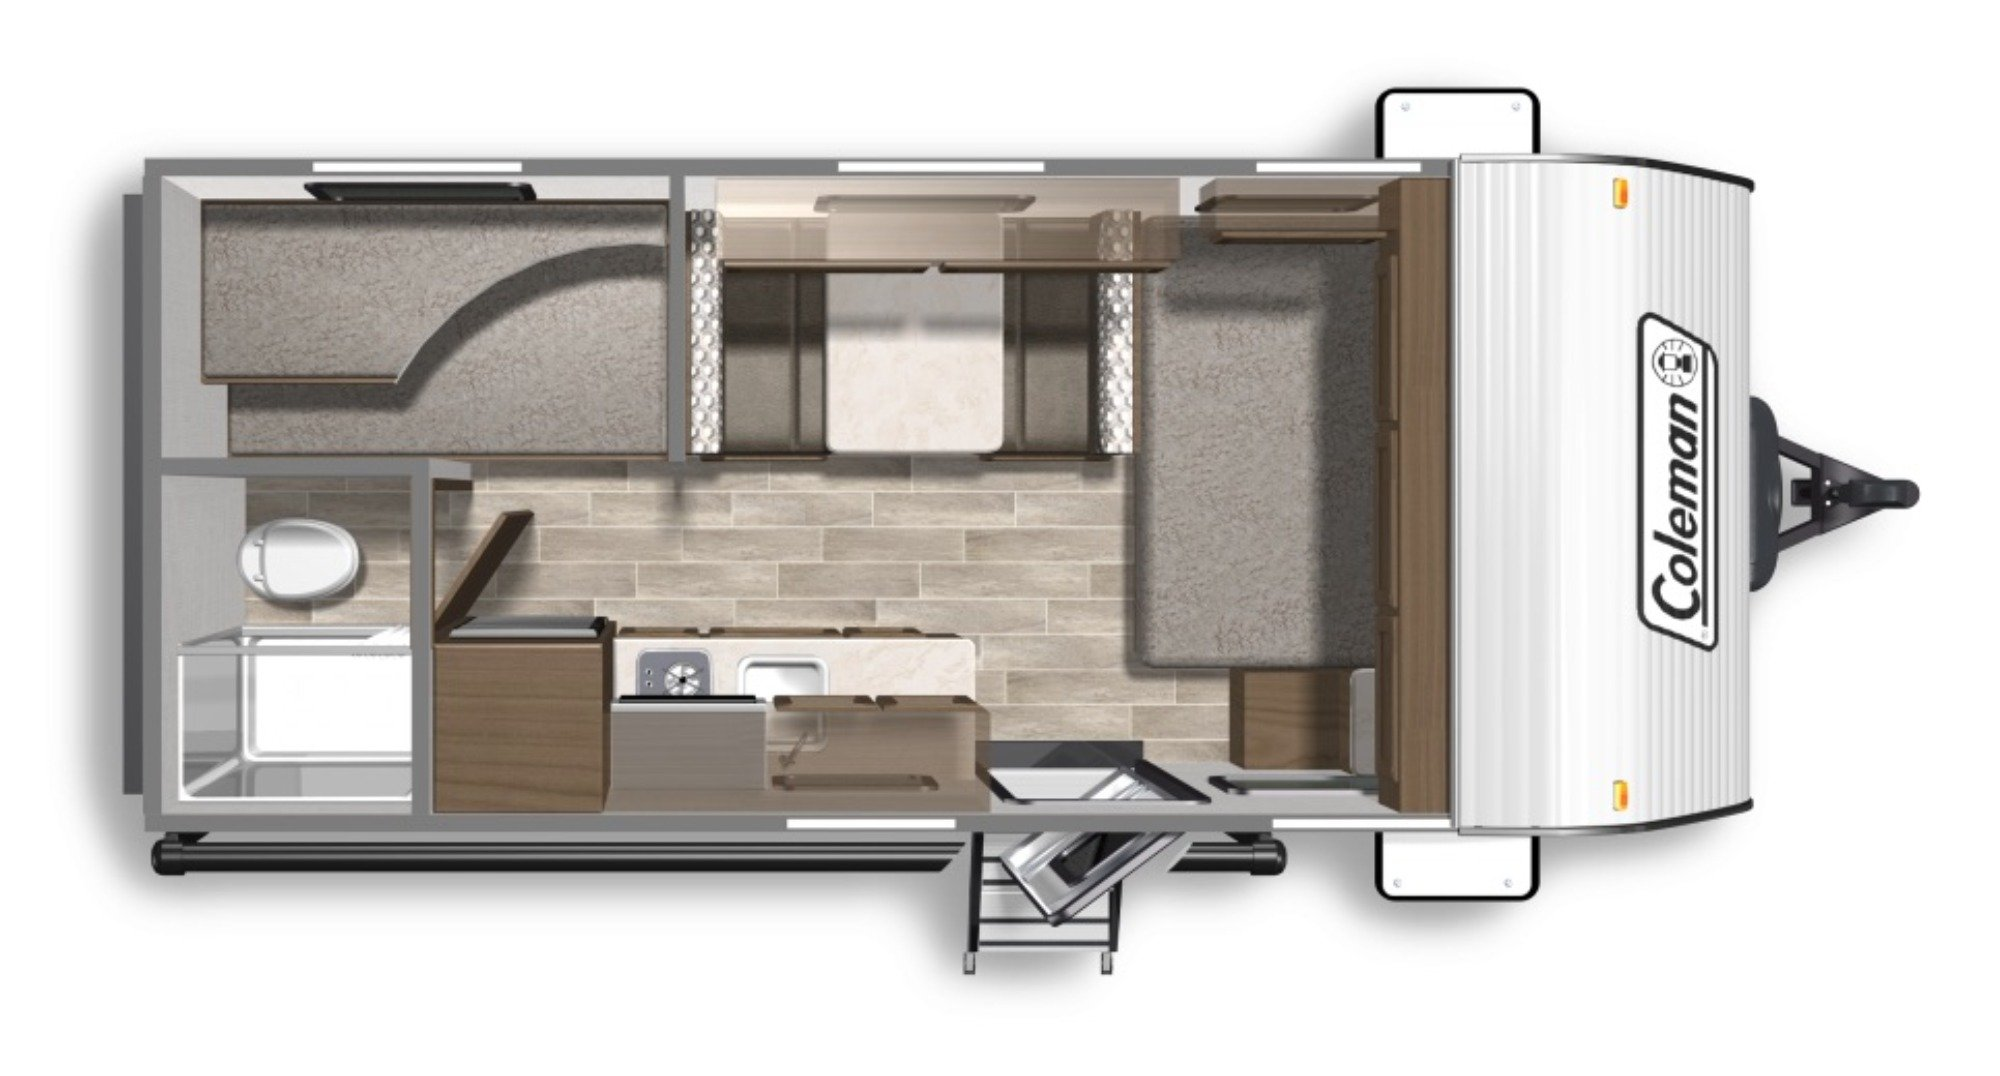 View Floor Plan for 2020 COLEMAN COLEMAN LANTERN LT 17FQ